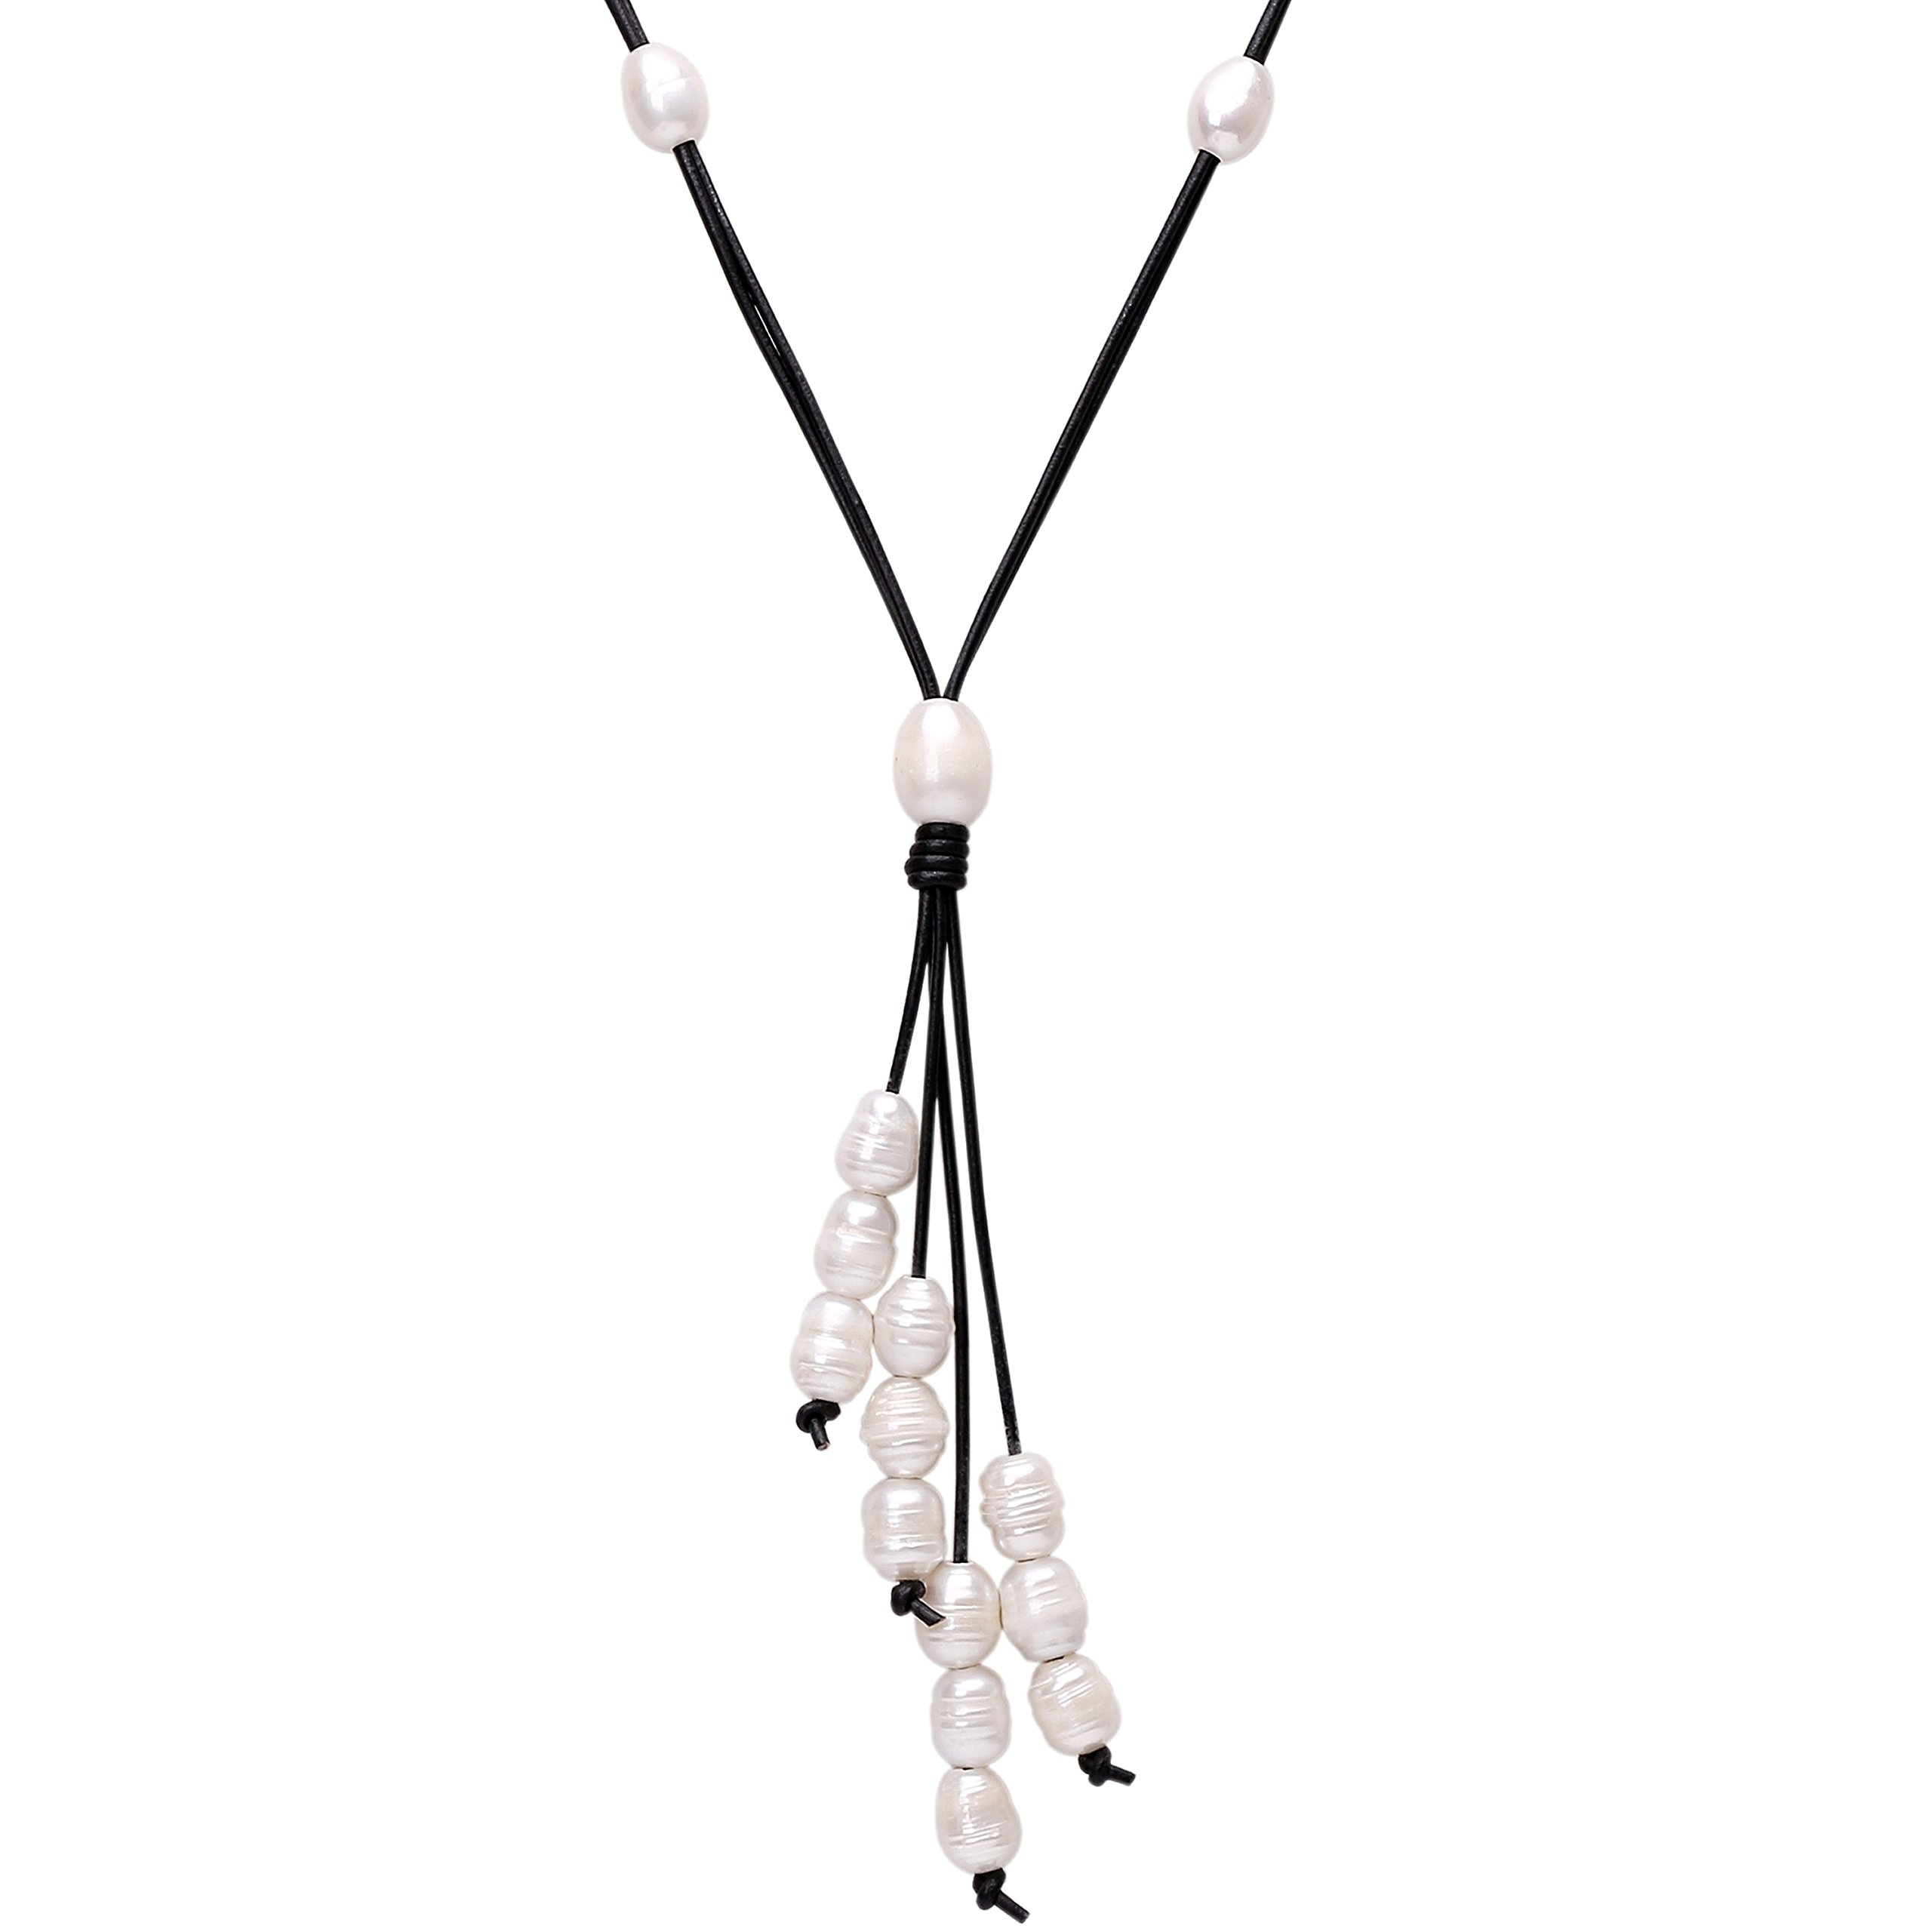 PearlyPearls Long Freshwater Cultured Pearl Necklace with Pendant on Leather Cord Y-Shaped Boho Necklace for Women